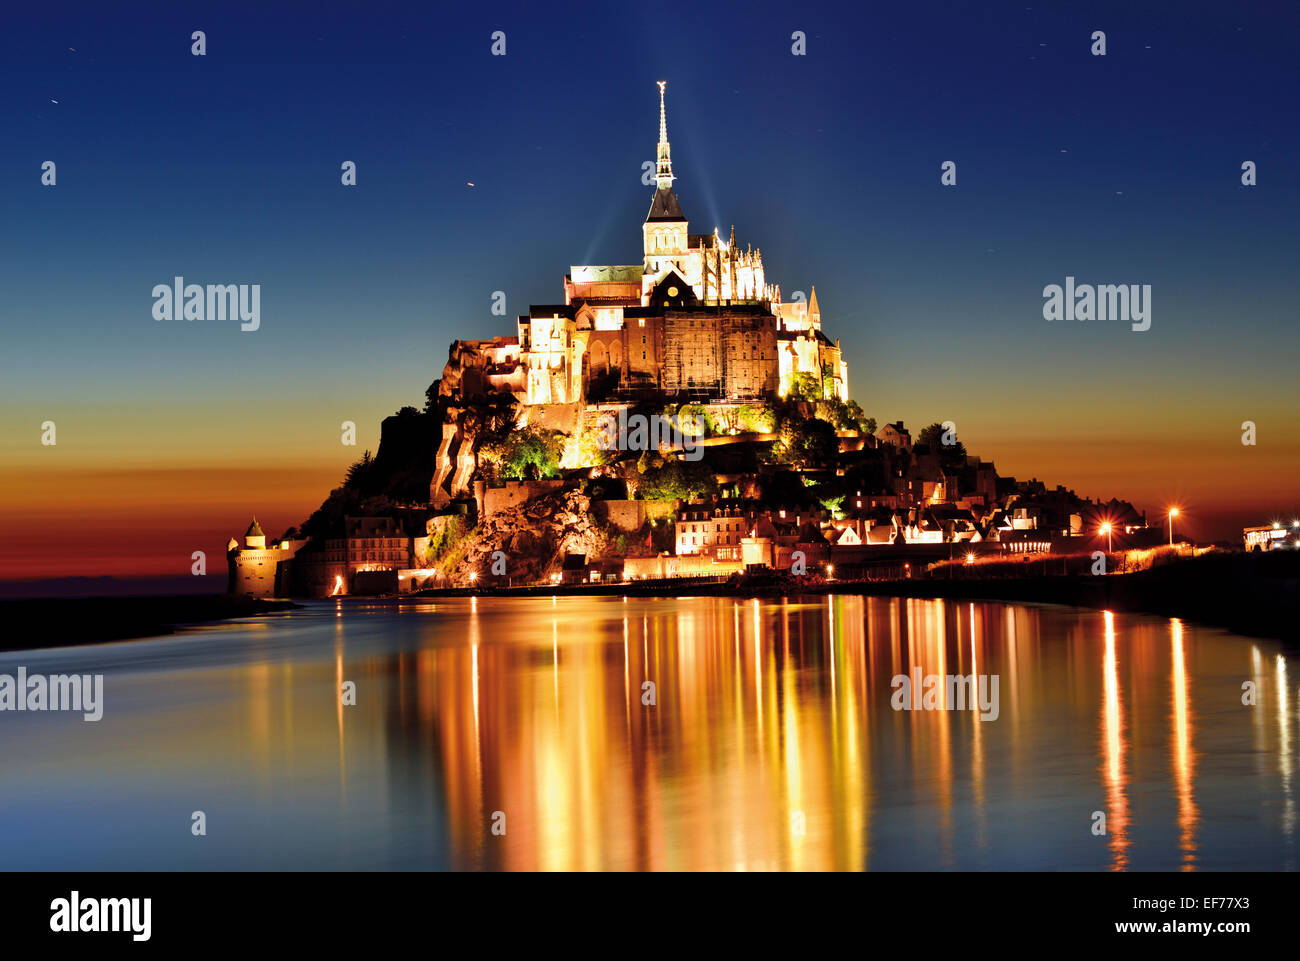 France, Normandy: Scenic view of Le Mont St. Michel by night - Stock Image